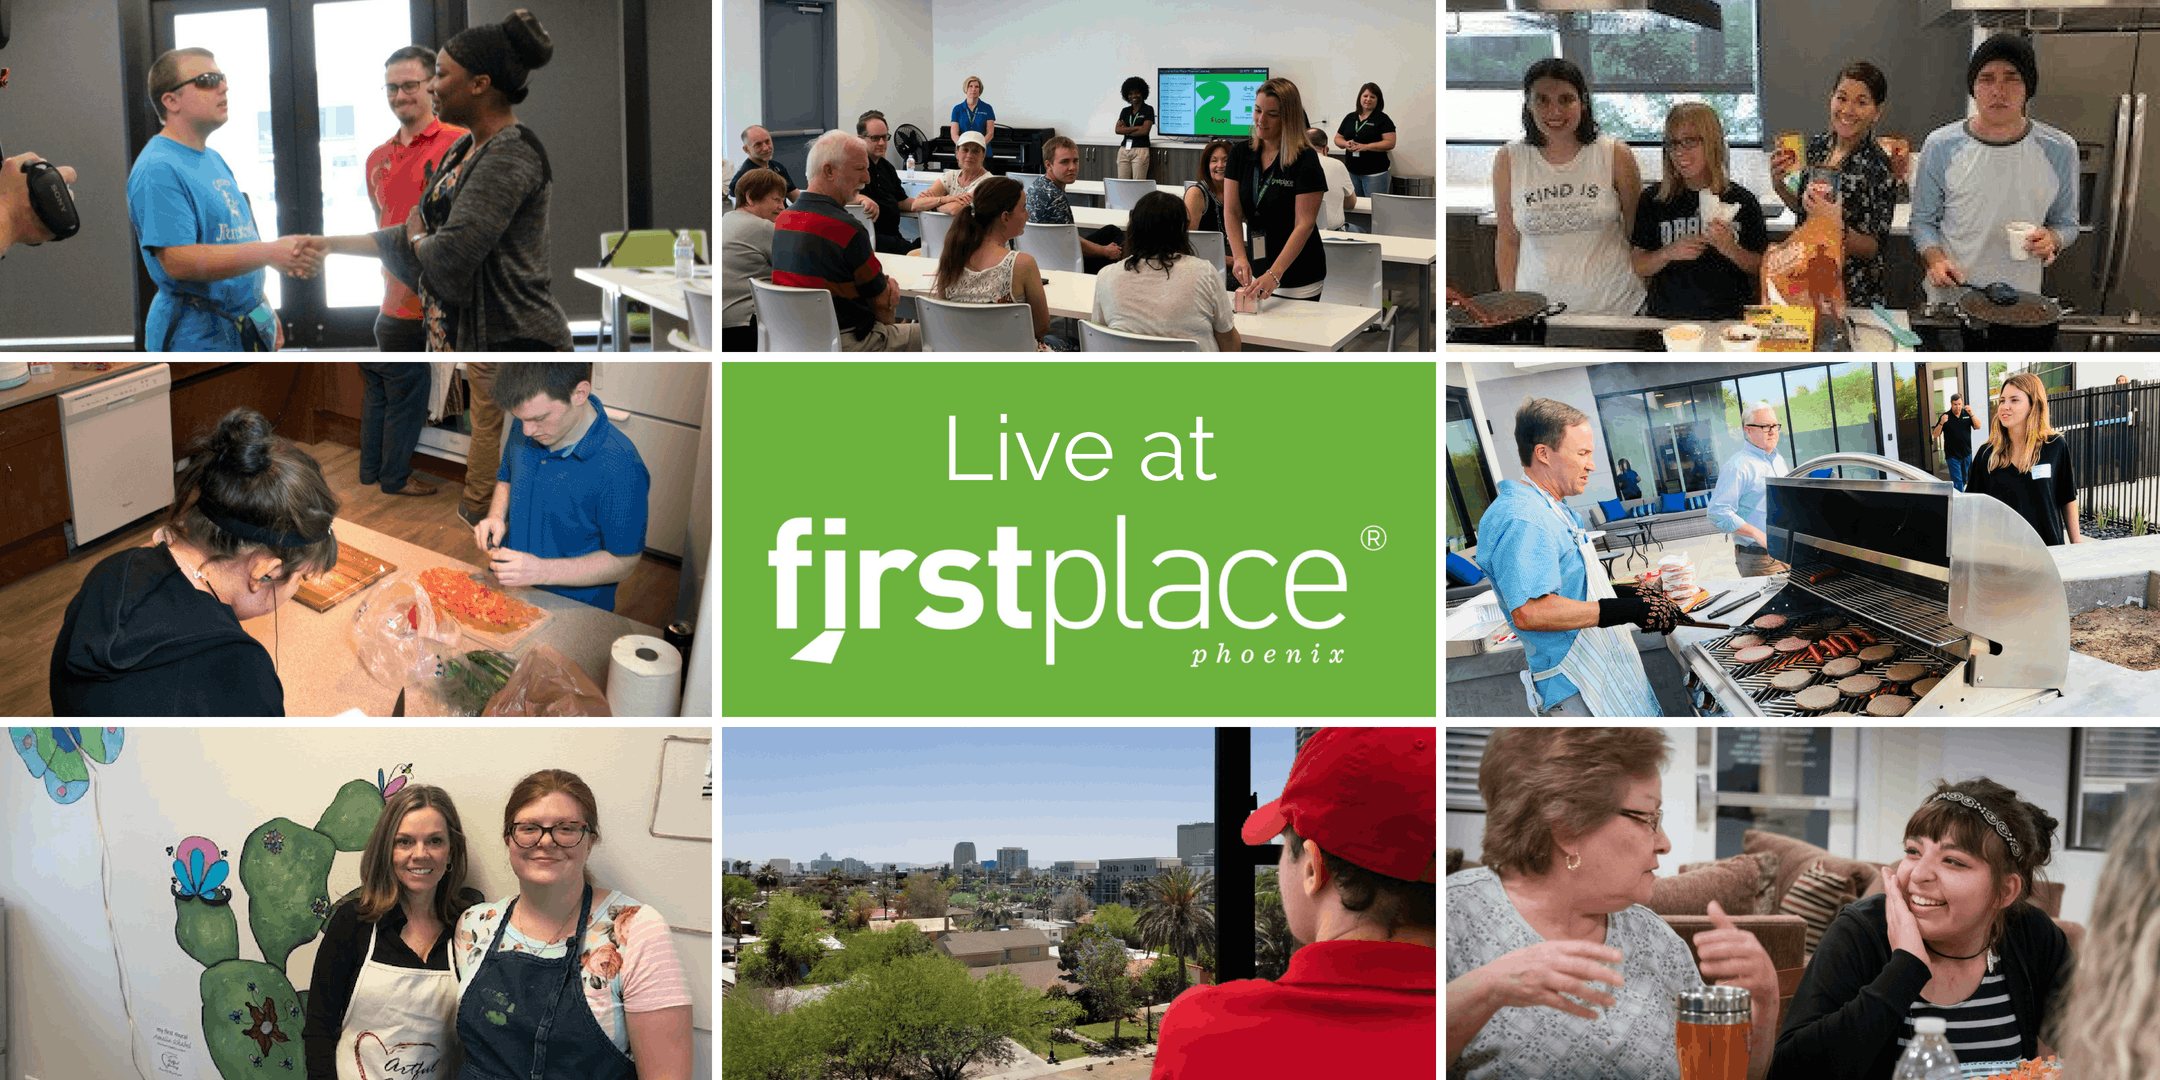 Explore First Place–Phoenix - February 22